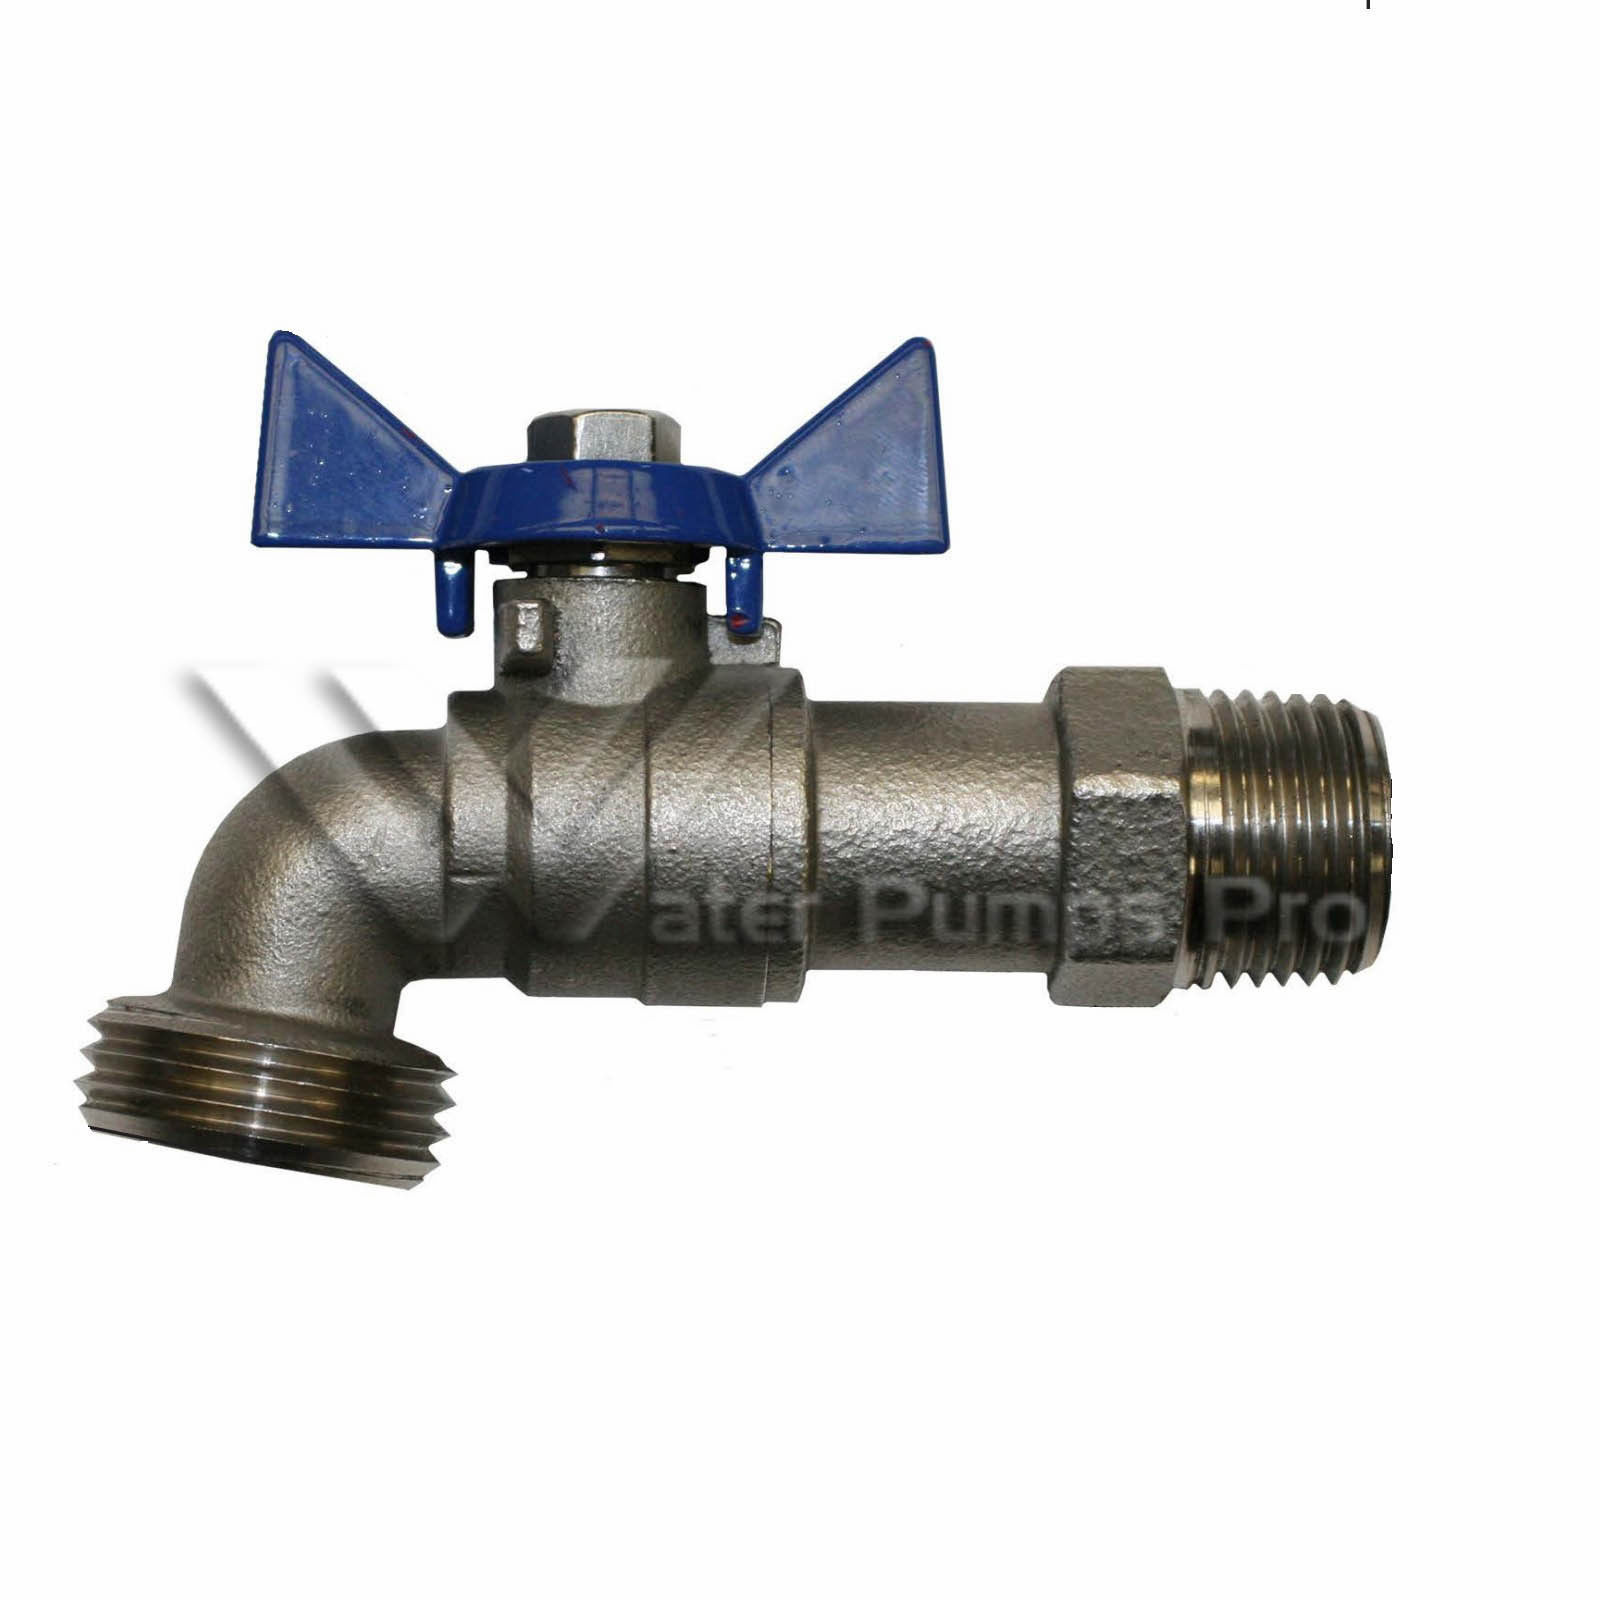 "Merrill SSBD75 3/4"" Stainless Steel Boiler Drain with Hose Bibb"